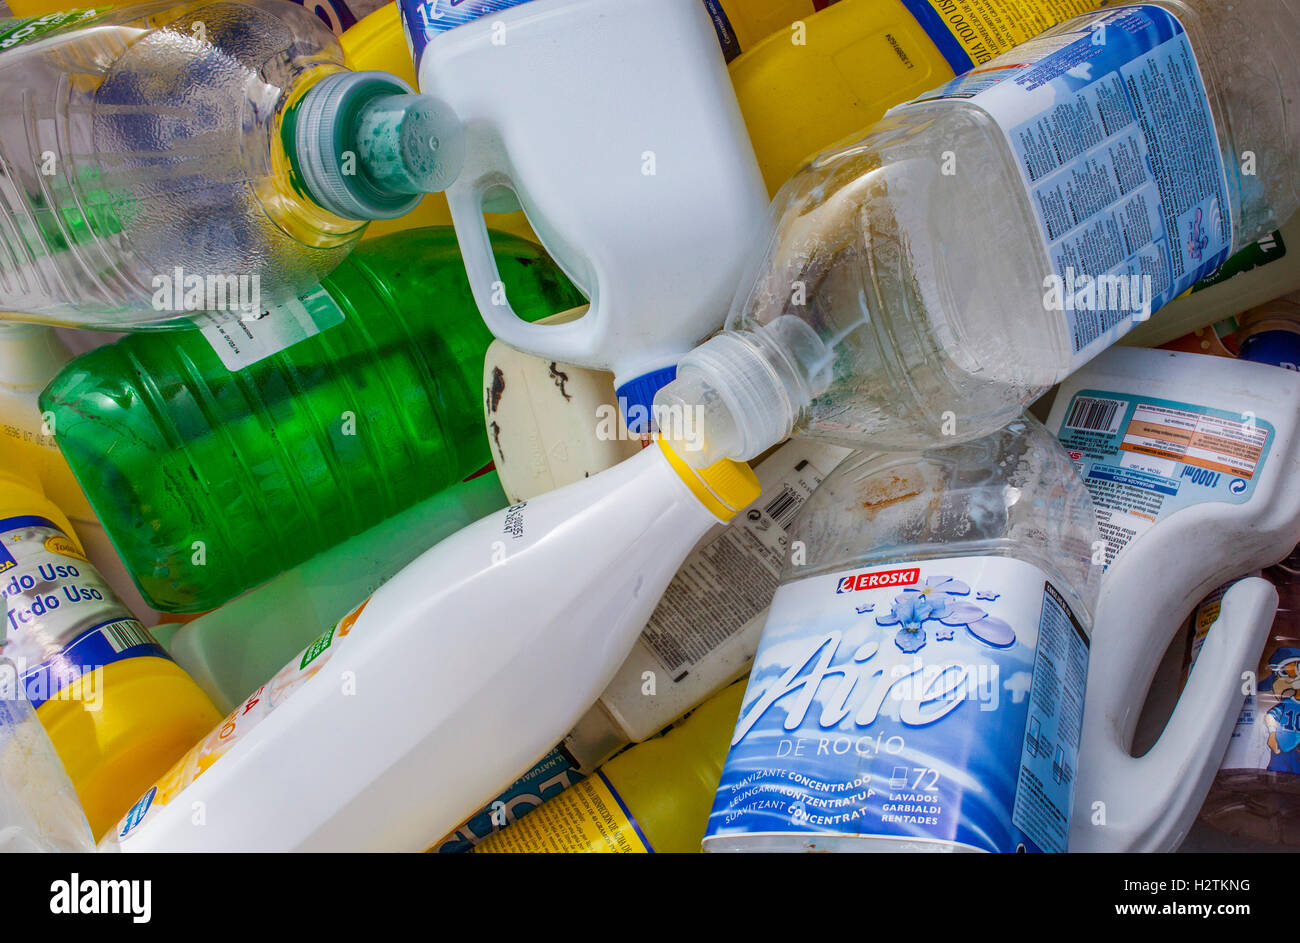 marketing essay plastic bottle recycling Remember that because plastic doesn't break down easily (if ever), recycling plastic means that it is still plastic, just being used for a different purpose therefore, you're not actually reducing plastic amounts or exposure, even in the recycling process.